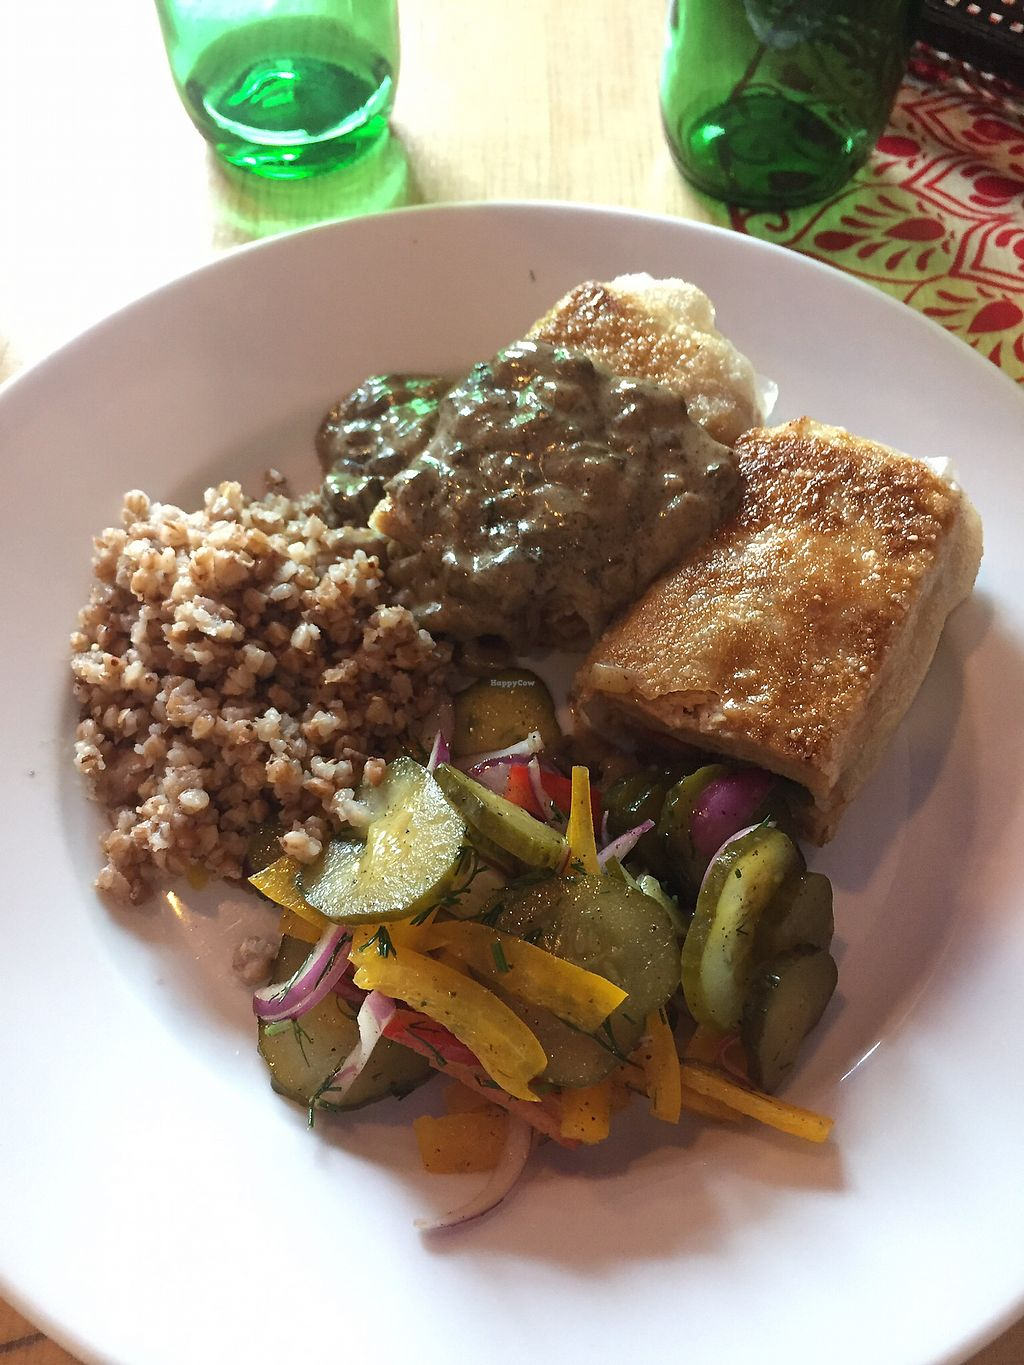 """Photo of Vege Bistro - Polish Vegan Food  by <a href=""""/members/profile/Sophiapalmqvist"""">Sophiapalmqvist</a> <br/>soybean cutlet with grains and mushroom sauce <br/> August 12, 2017  - <a href='/contact/abuse/image/58057/291939'>Report</a>"""